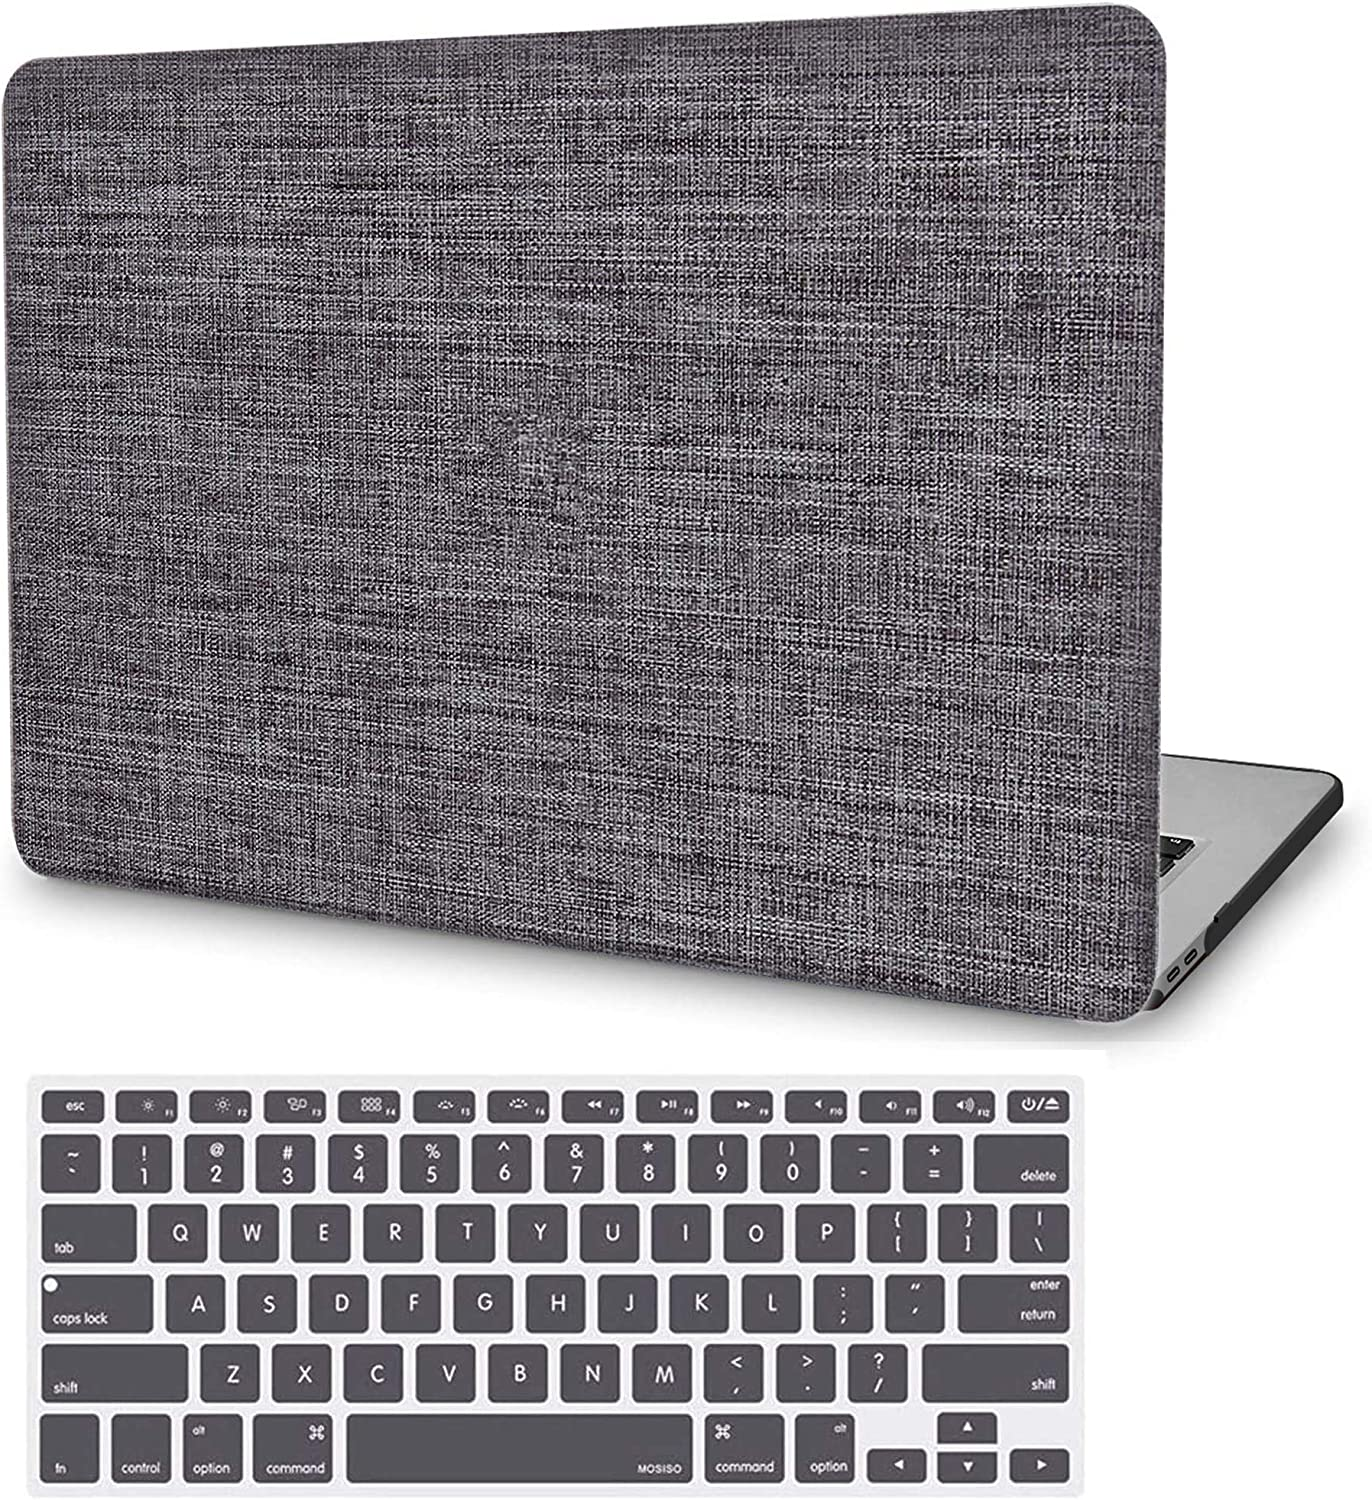 MacBook Air 13 Inch Case A1466 A1369, JGOO Slim Soft Touch Fabric Hard Protective Laptop Shell Cover Case with Keyboard Cover for Apple Mac Air 13.3 Inch (Older Version 2010-2017 Release), Grey